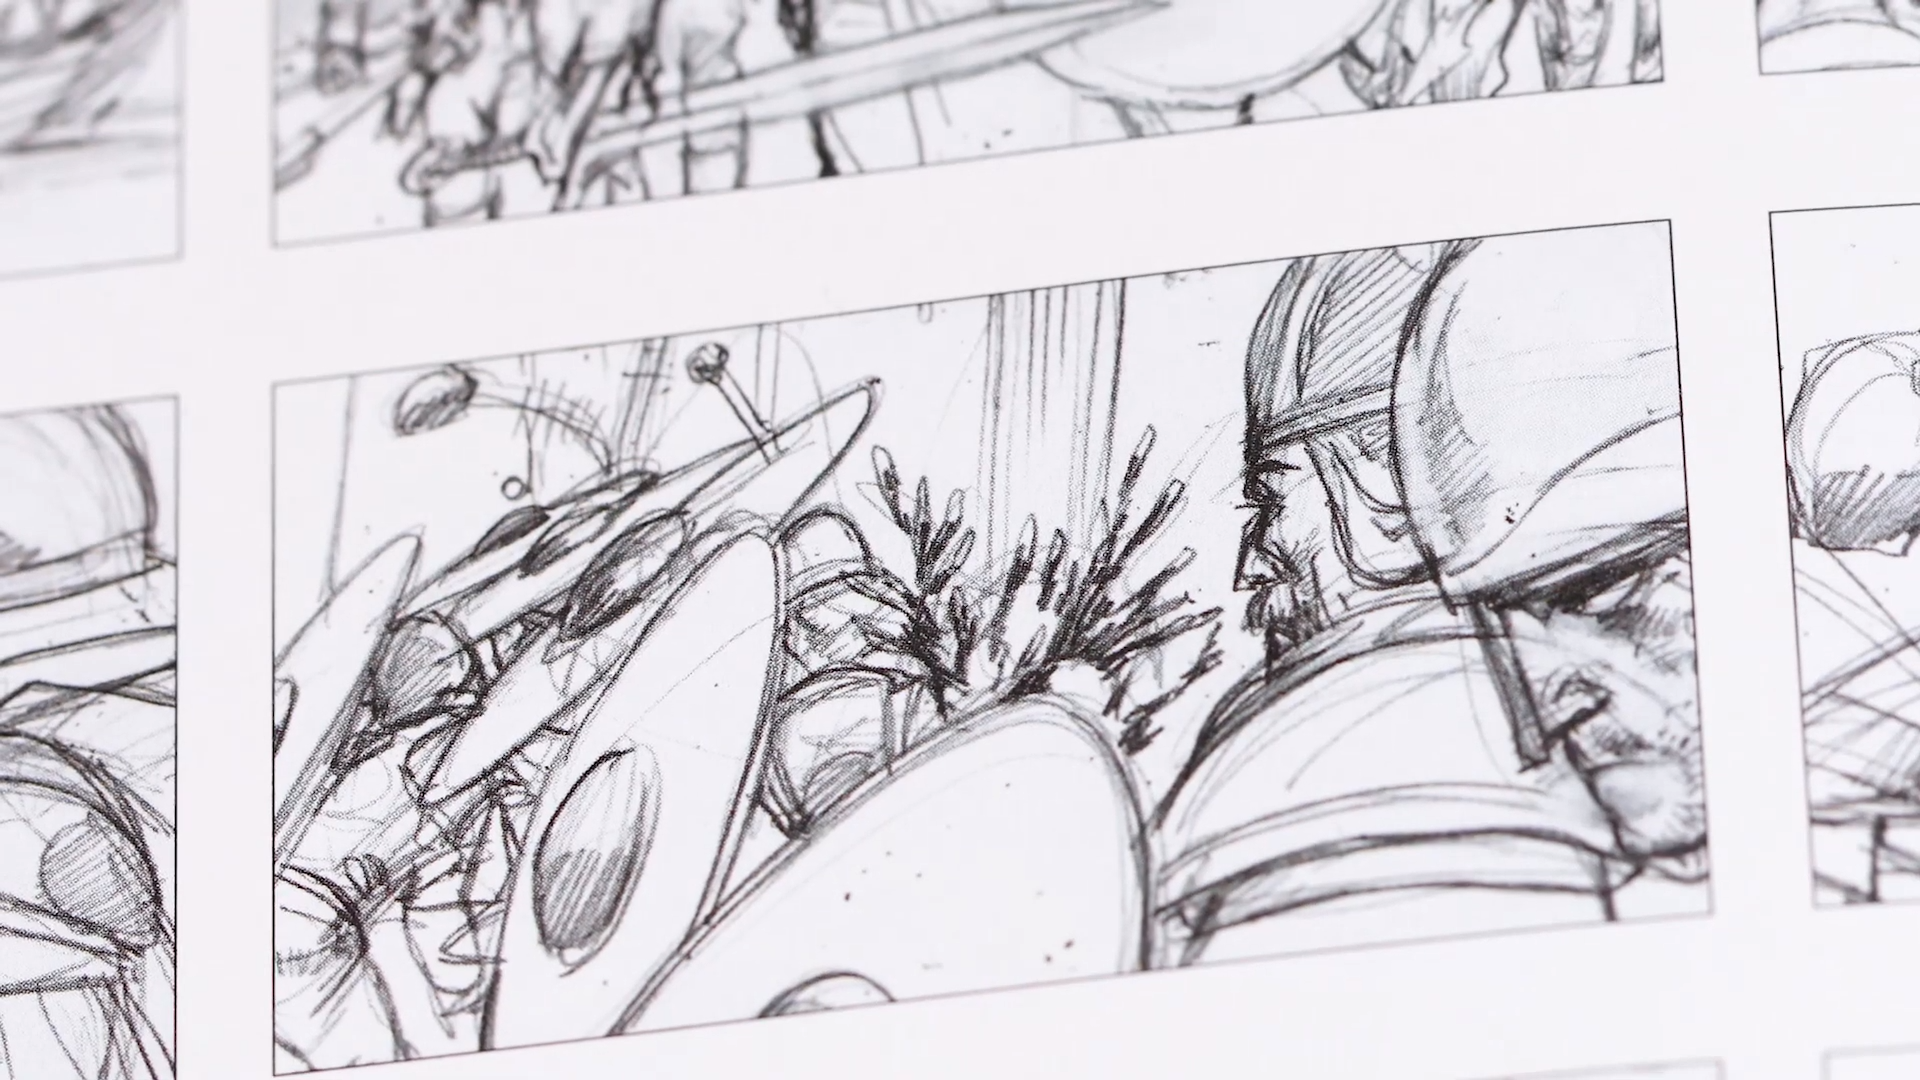 Storyboards Will Simpson Blackwater 2